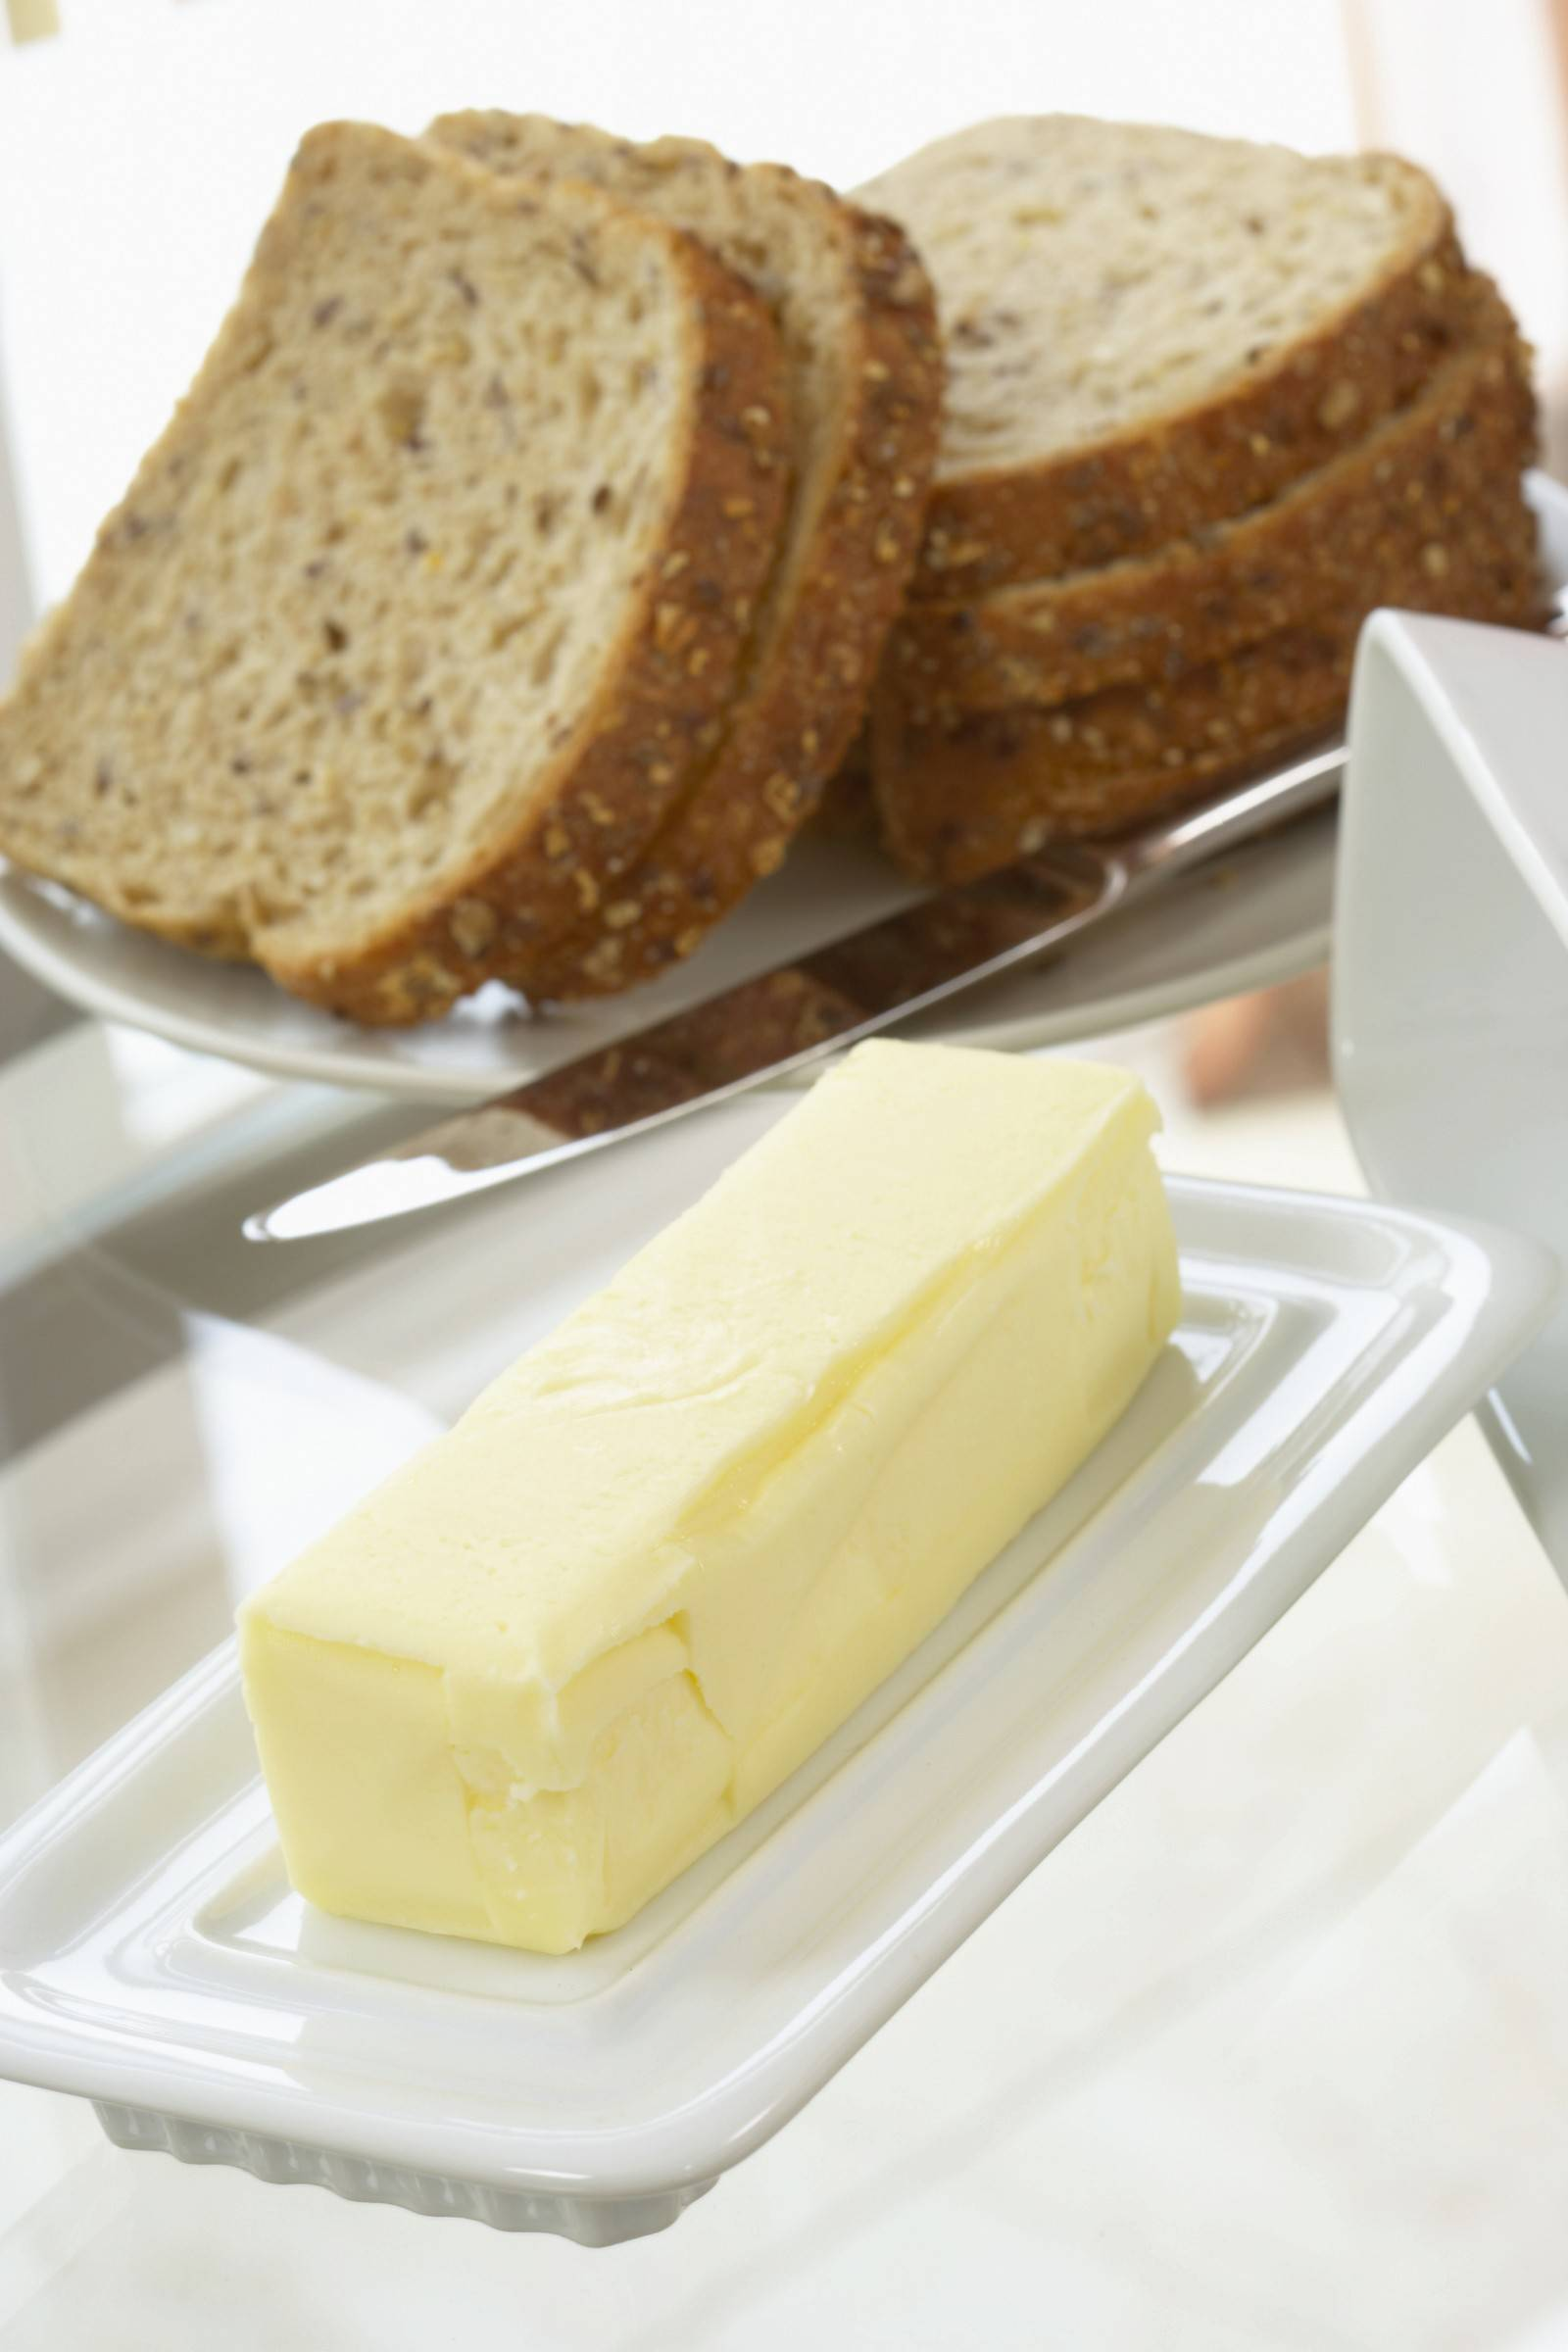 Americans are choosing butter over margarine more often these days, with butter consumption up more than 21 percent since 1997.